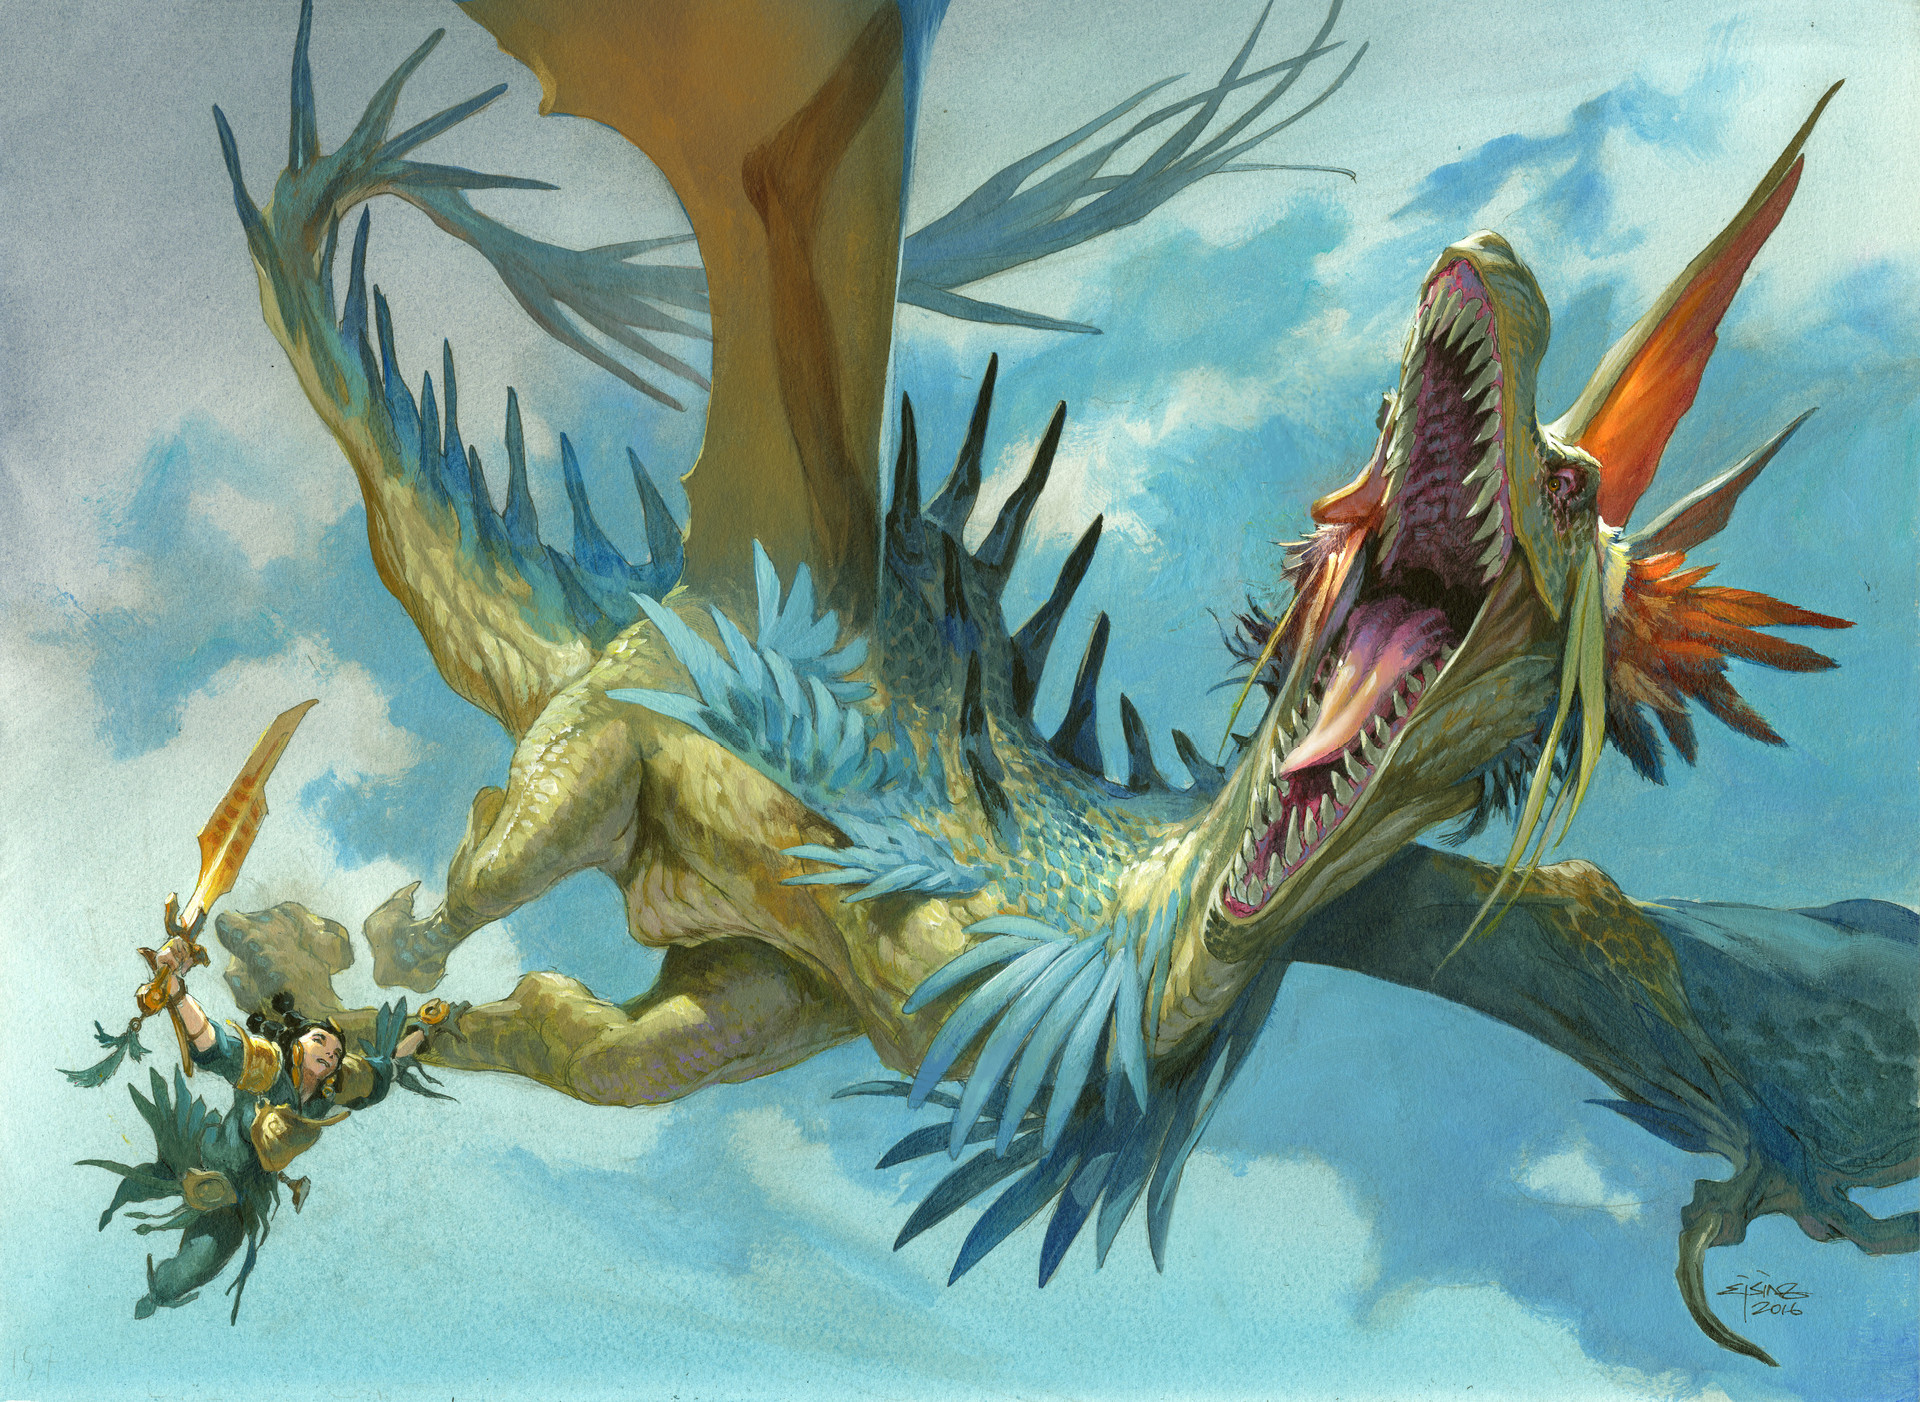 Jesper Ejsing Acrylic Painting Imperial Aerosaur Magic the Gathering Ixalan